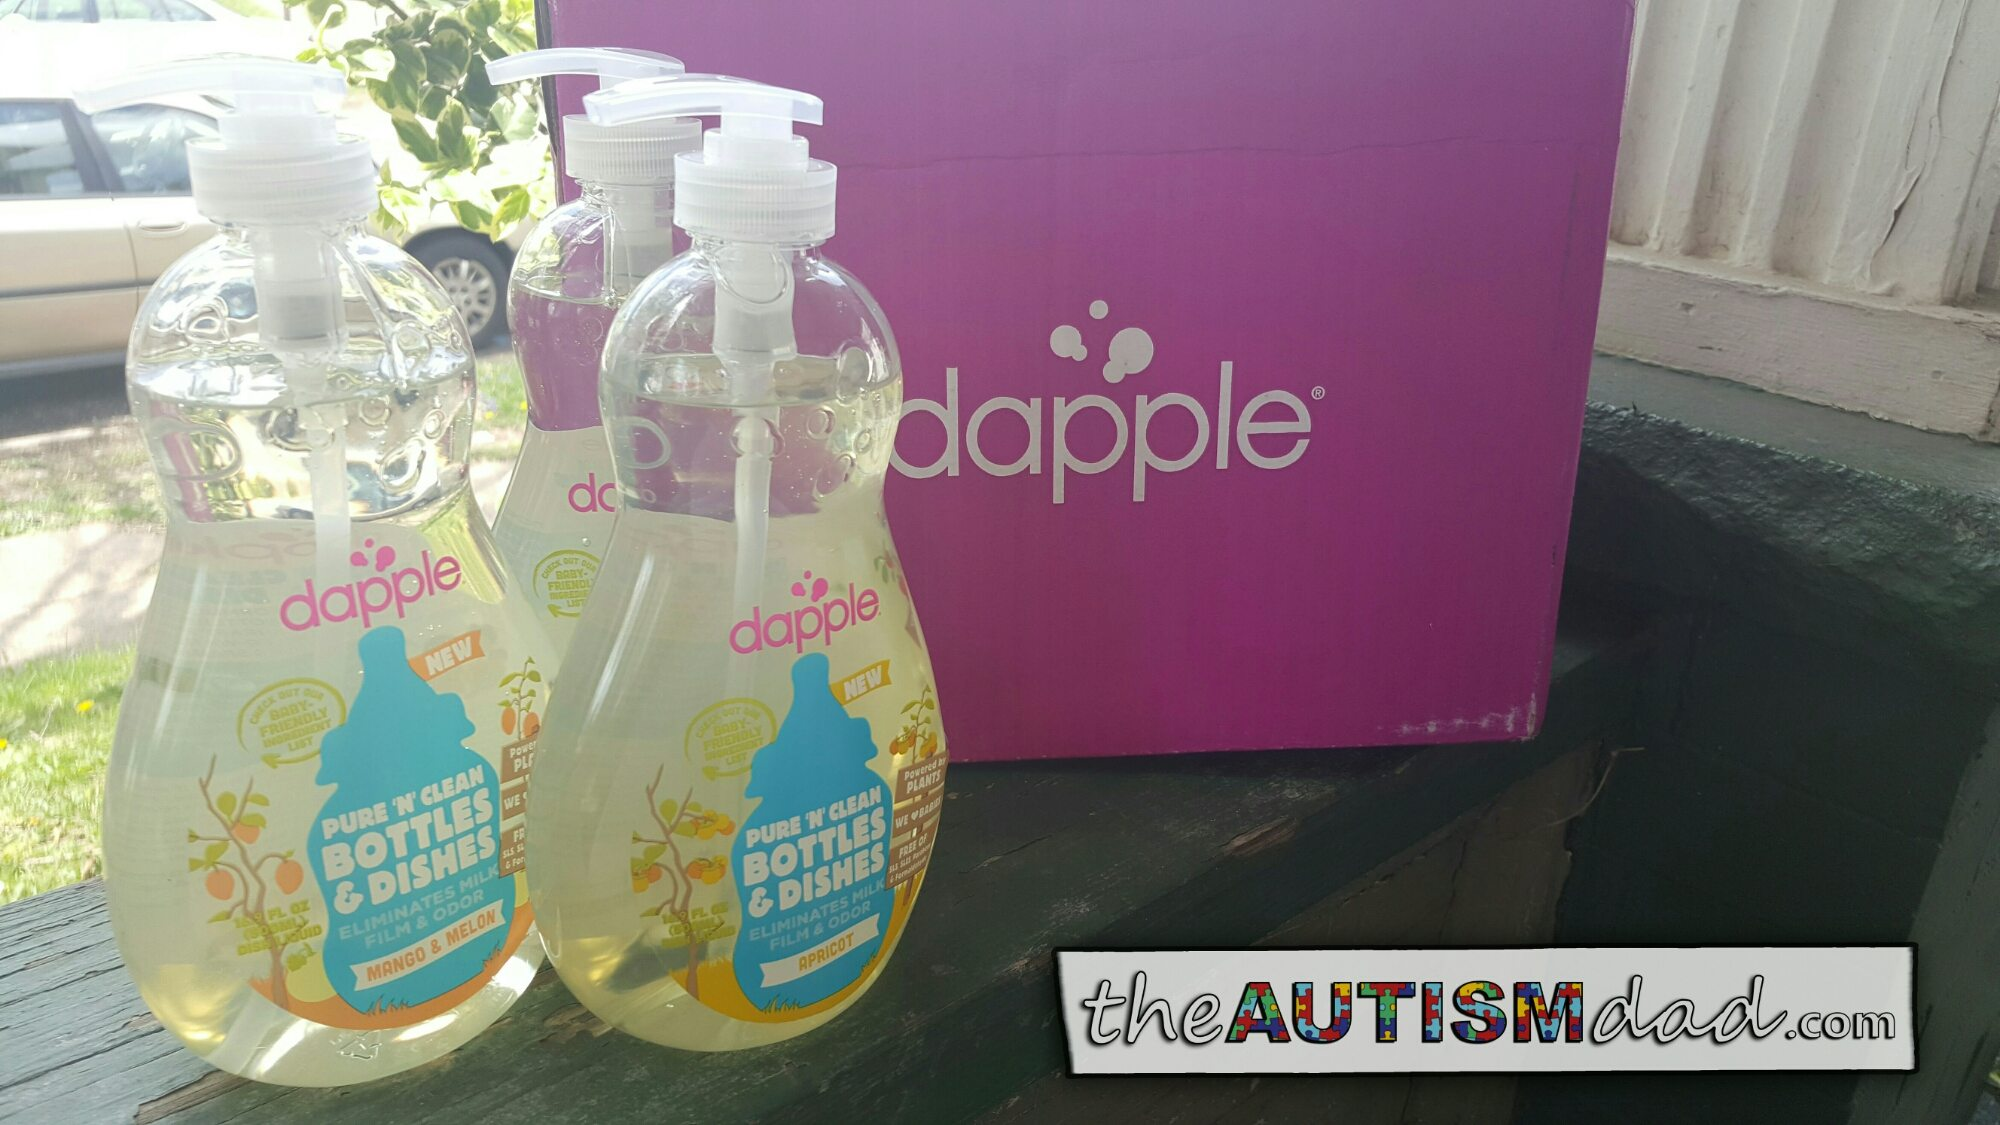 Thanks to our friends at Dapple for the samples (@dapplebaby)